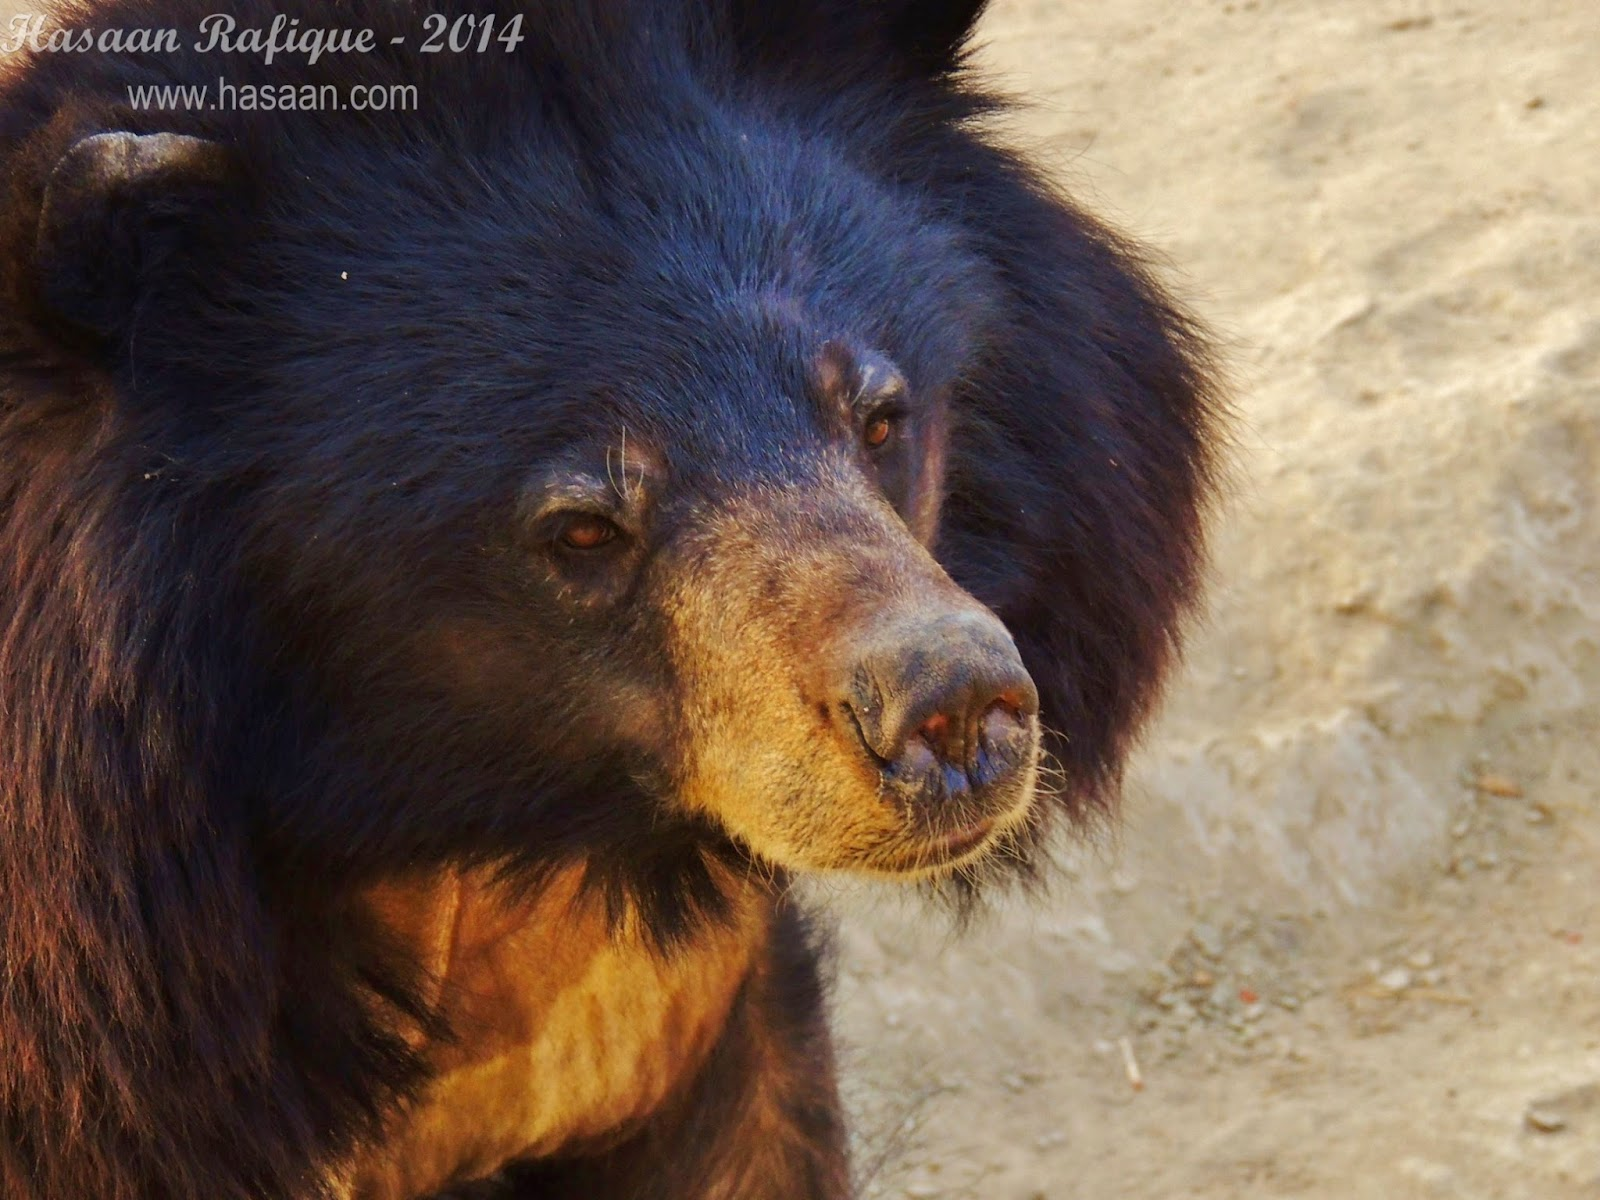 A black bear from up-close.